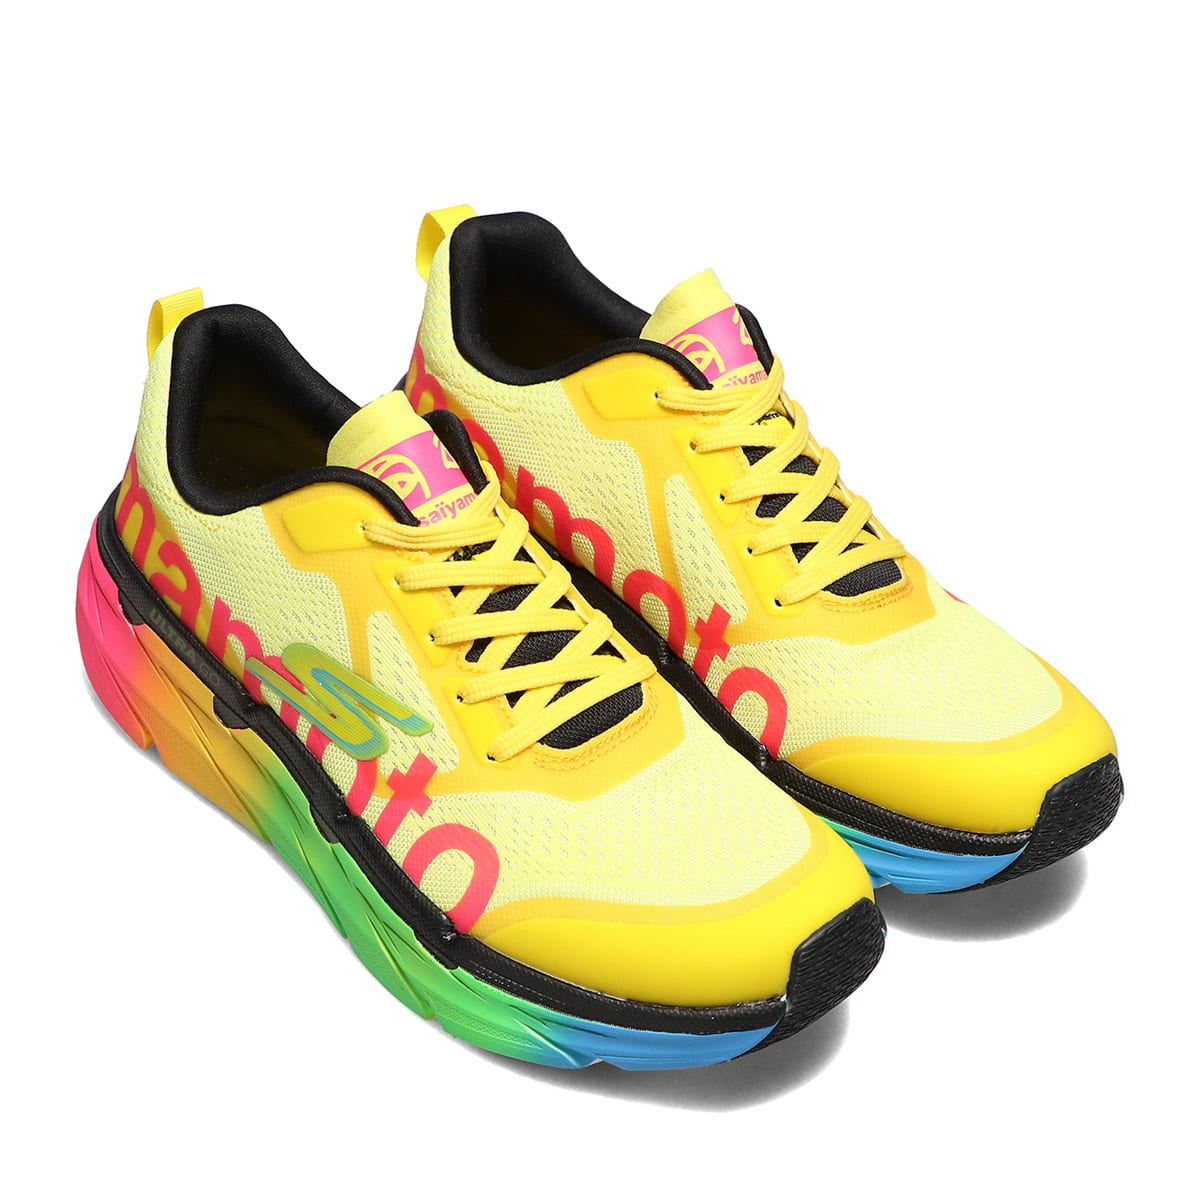 SKECHERS MAX CUSHIONING PREMIER-KY SOL YLMT 21FW-S_photo_large